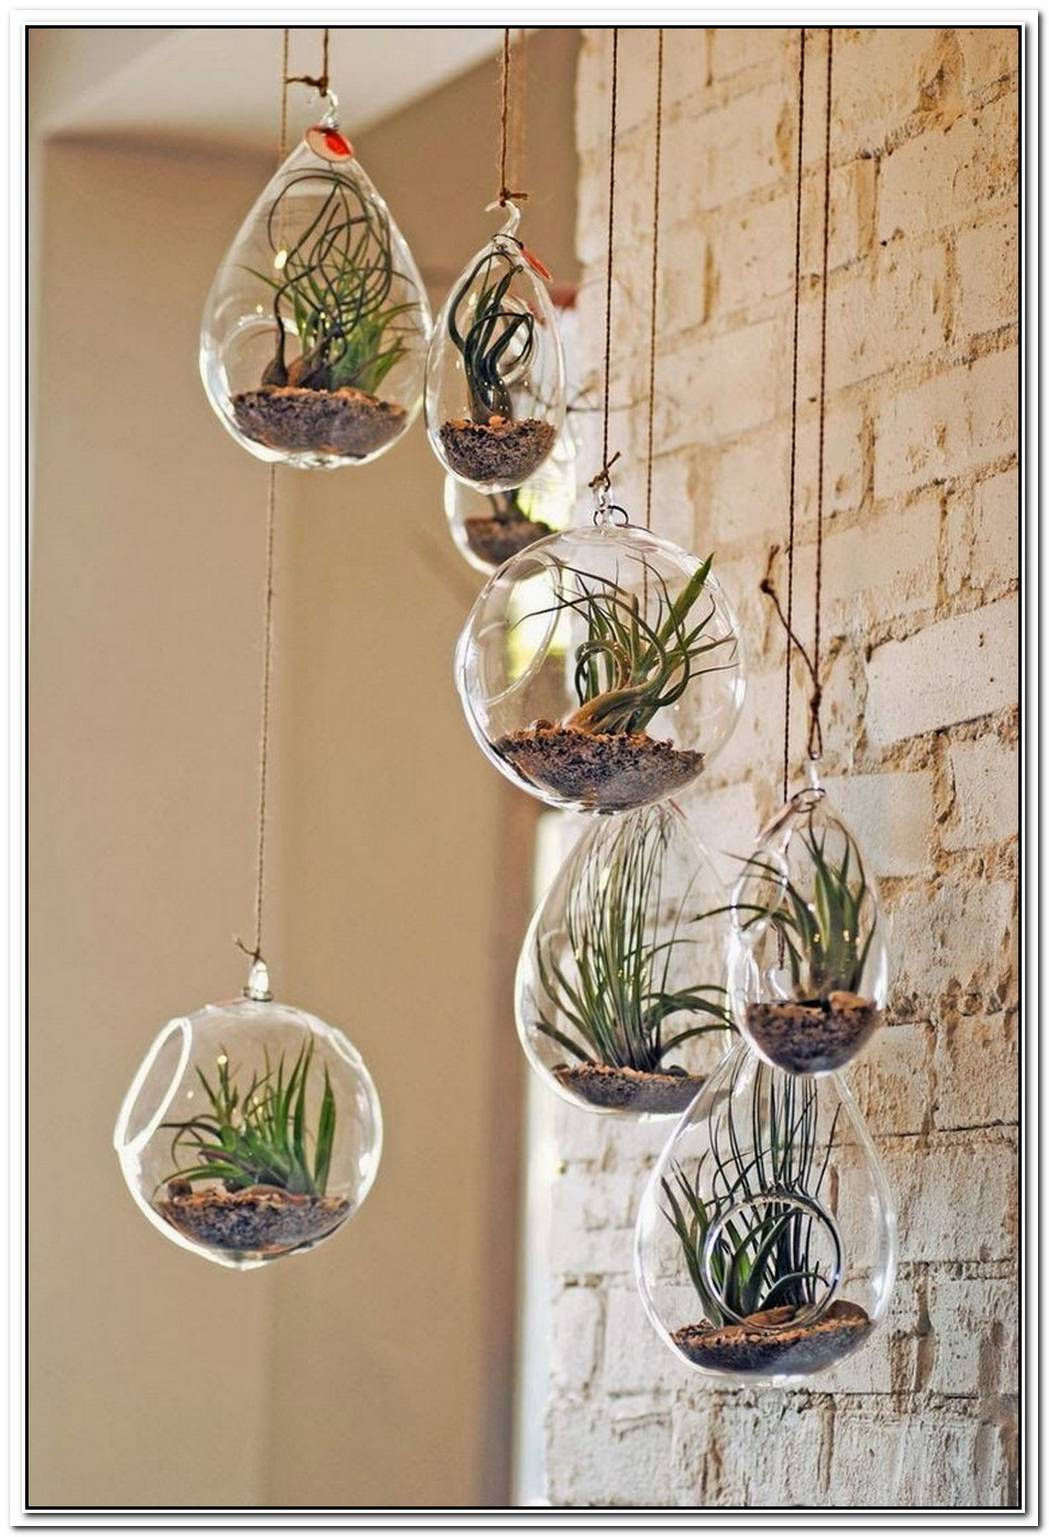 Magical Hanging Glass Bubble Planters